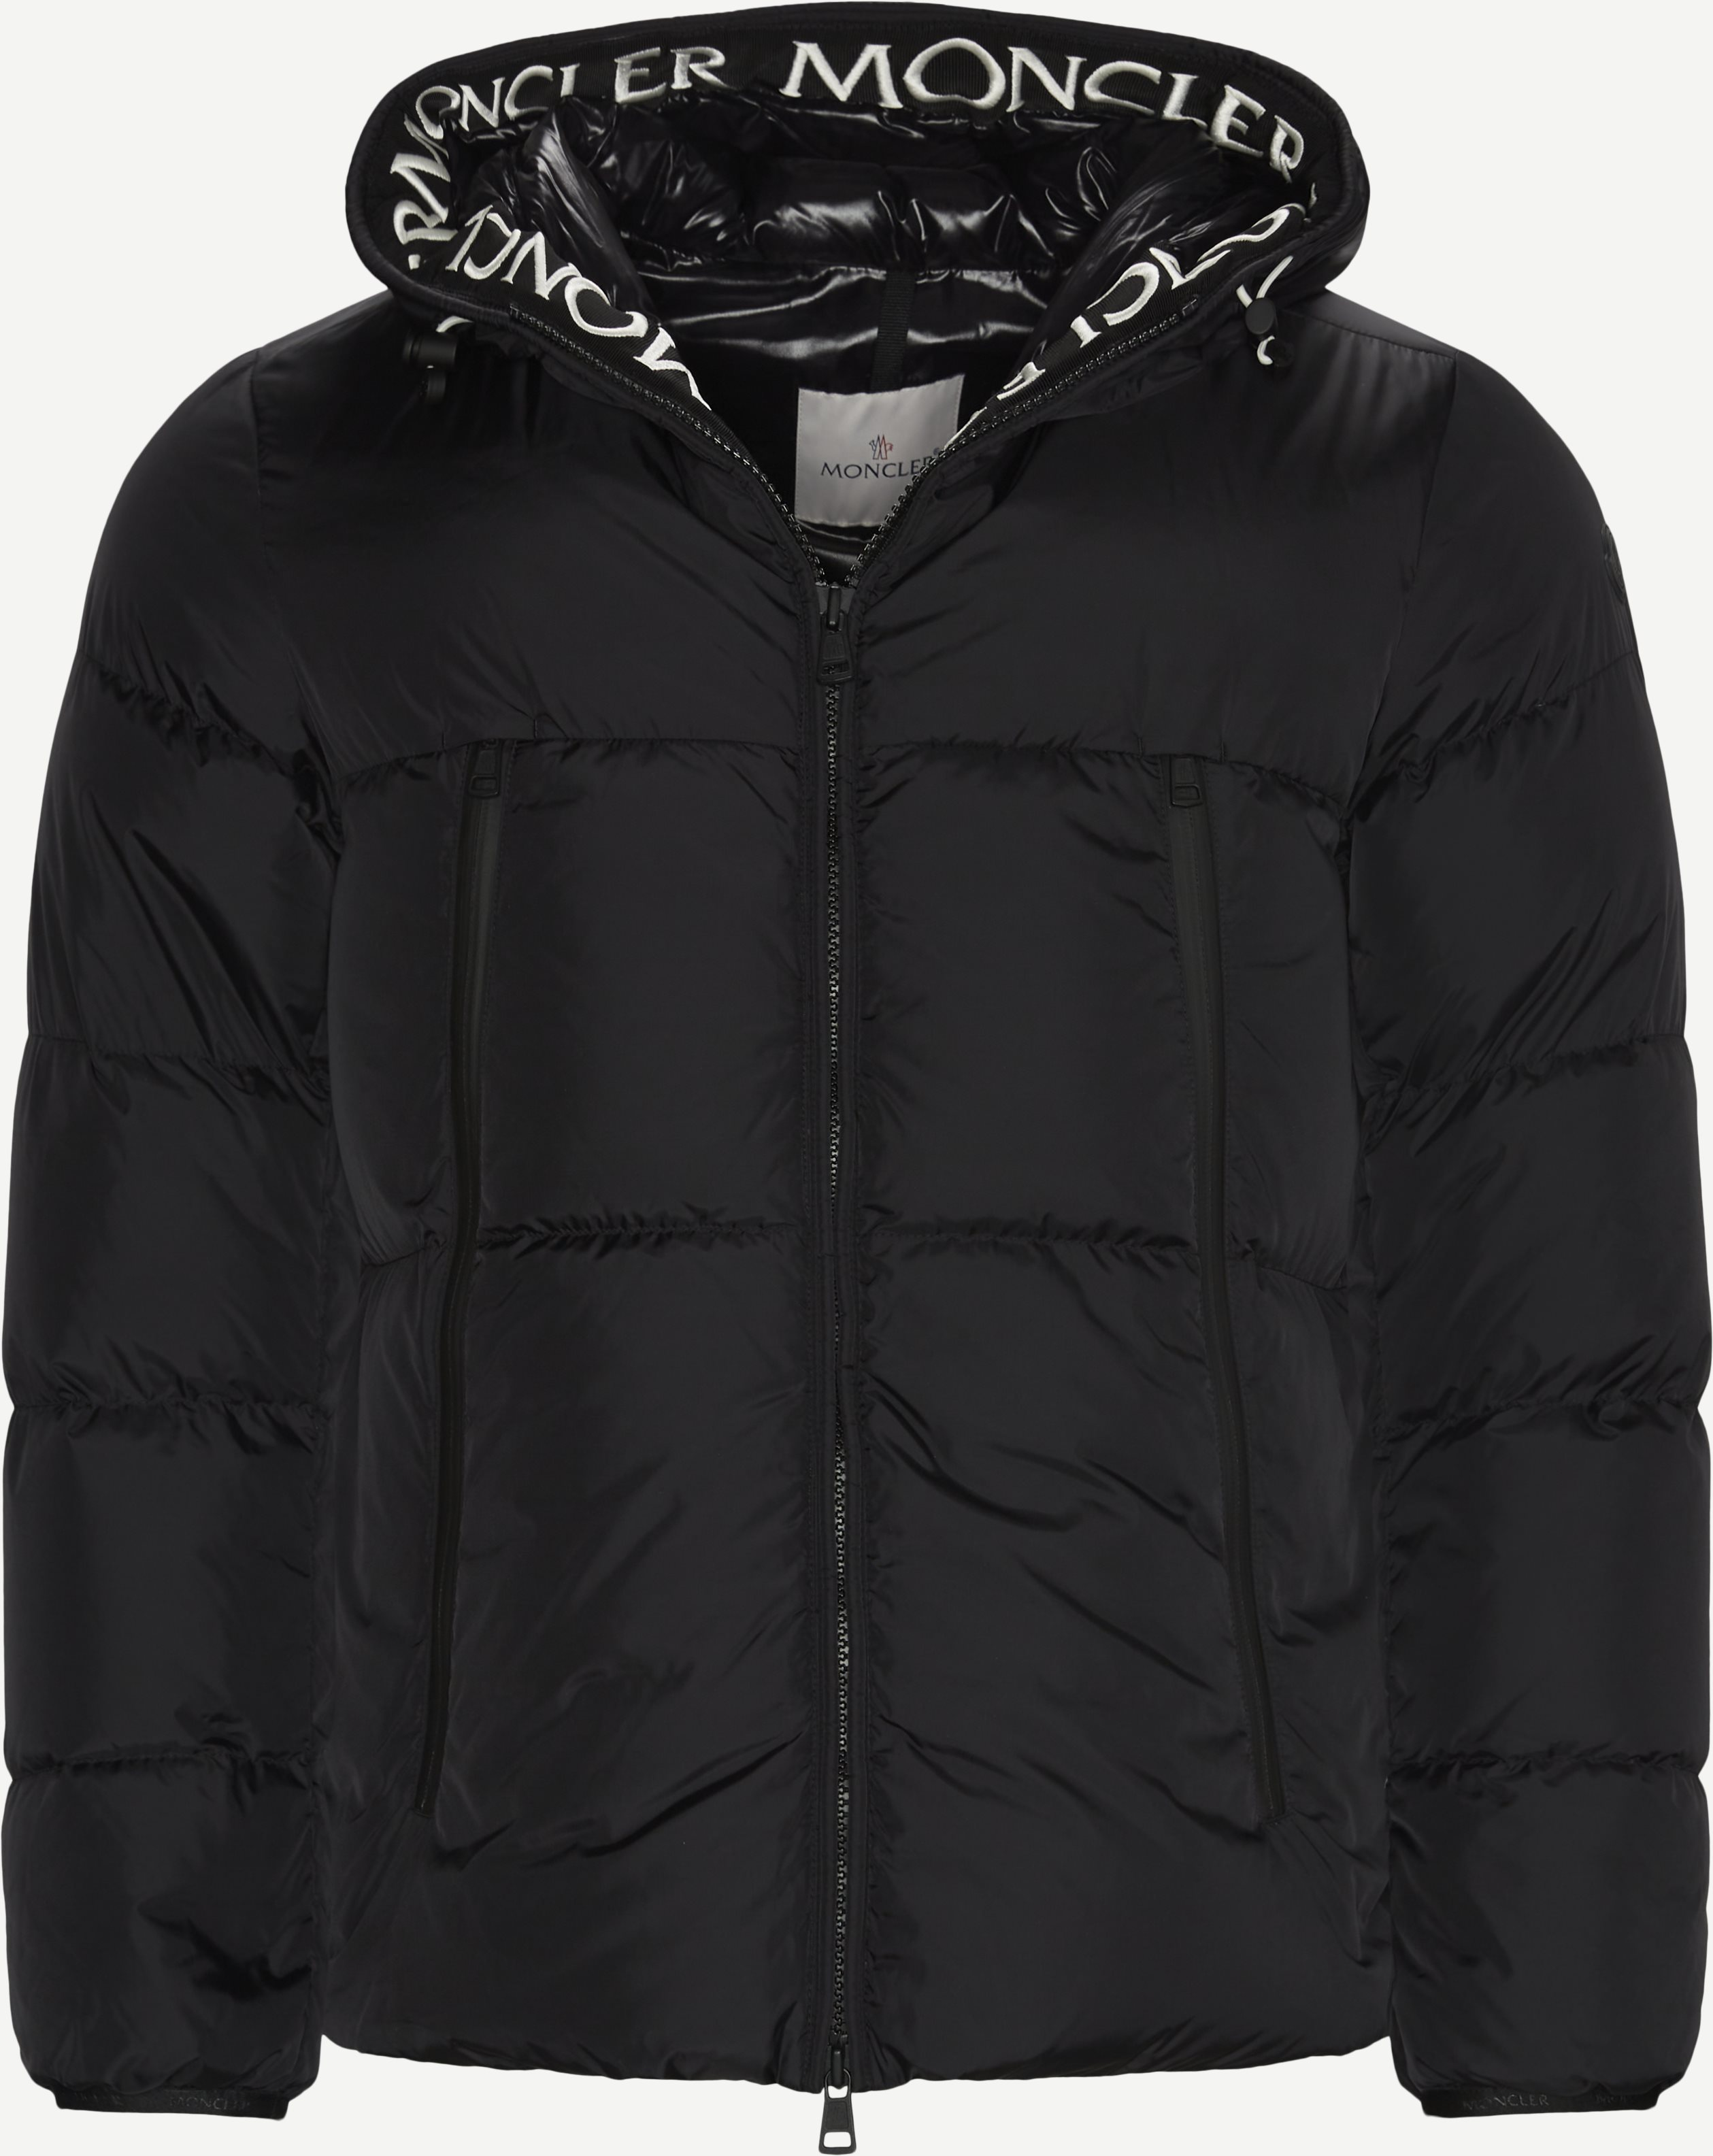 Giubbotto Down Jacket - Jackor - Regular - Svart